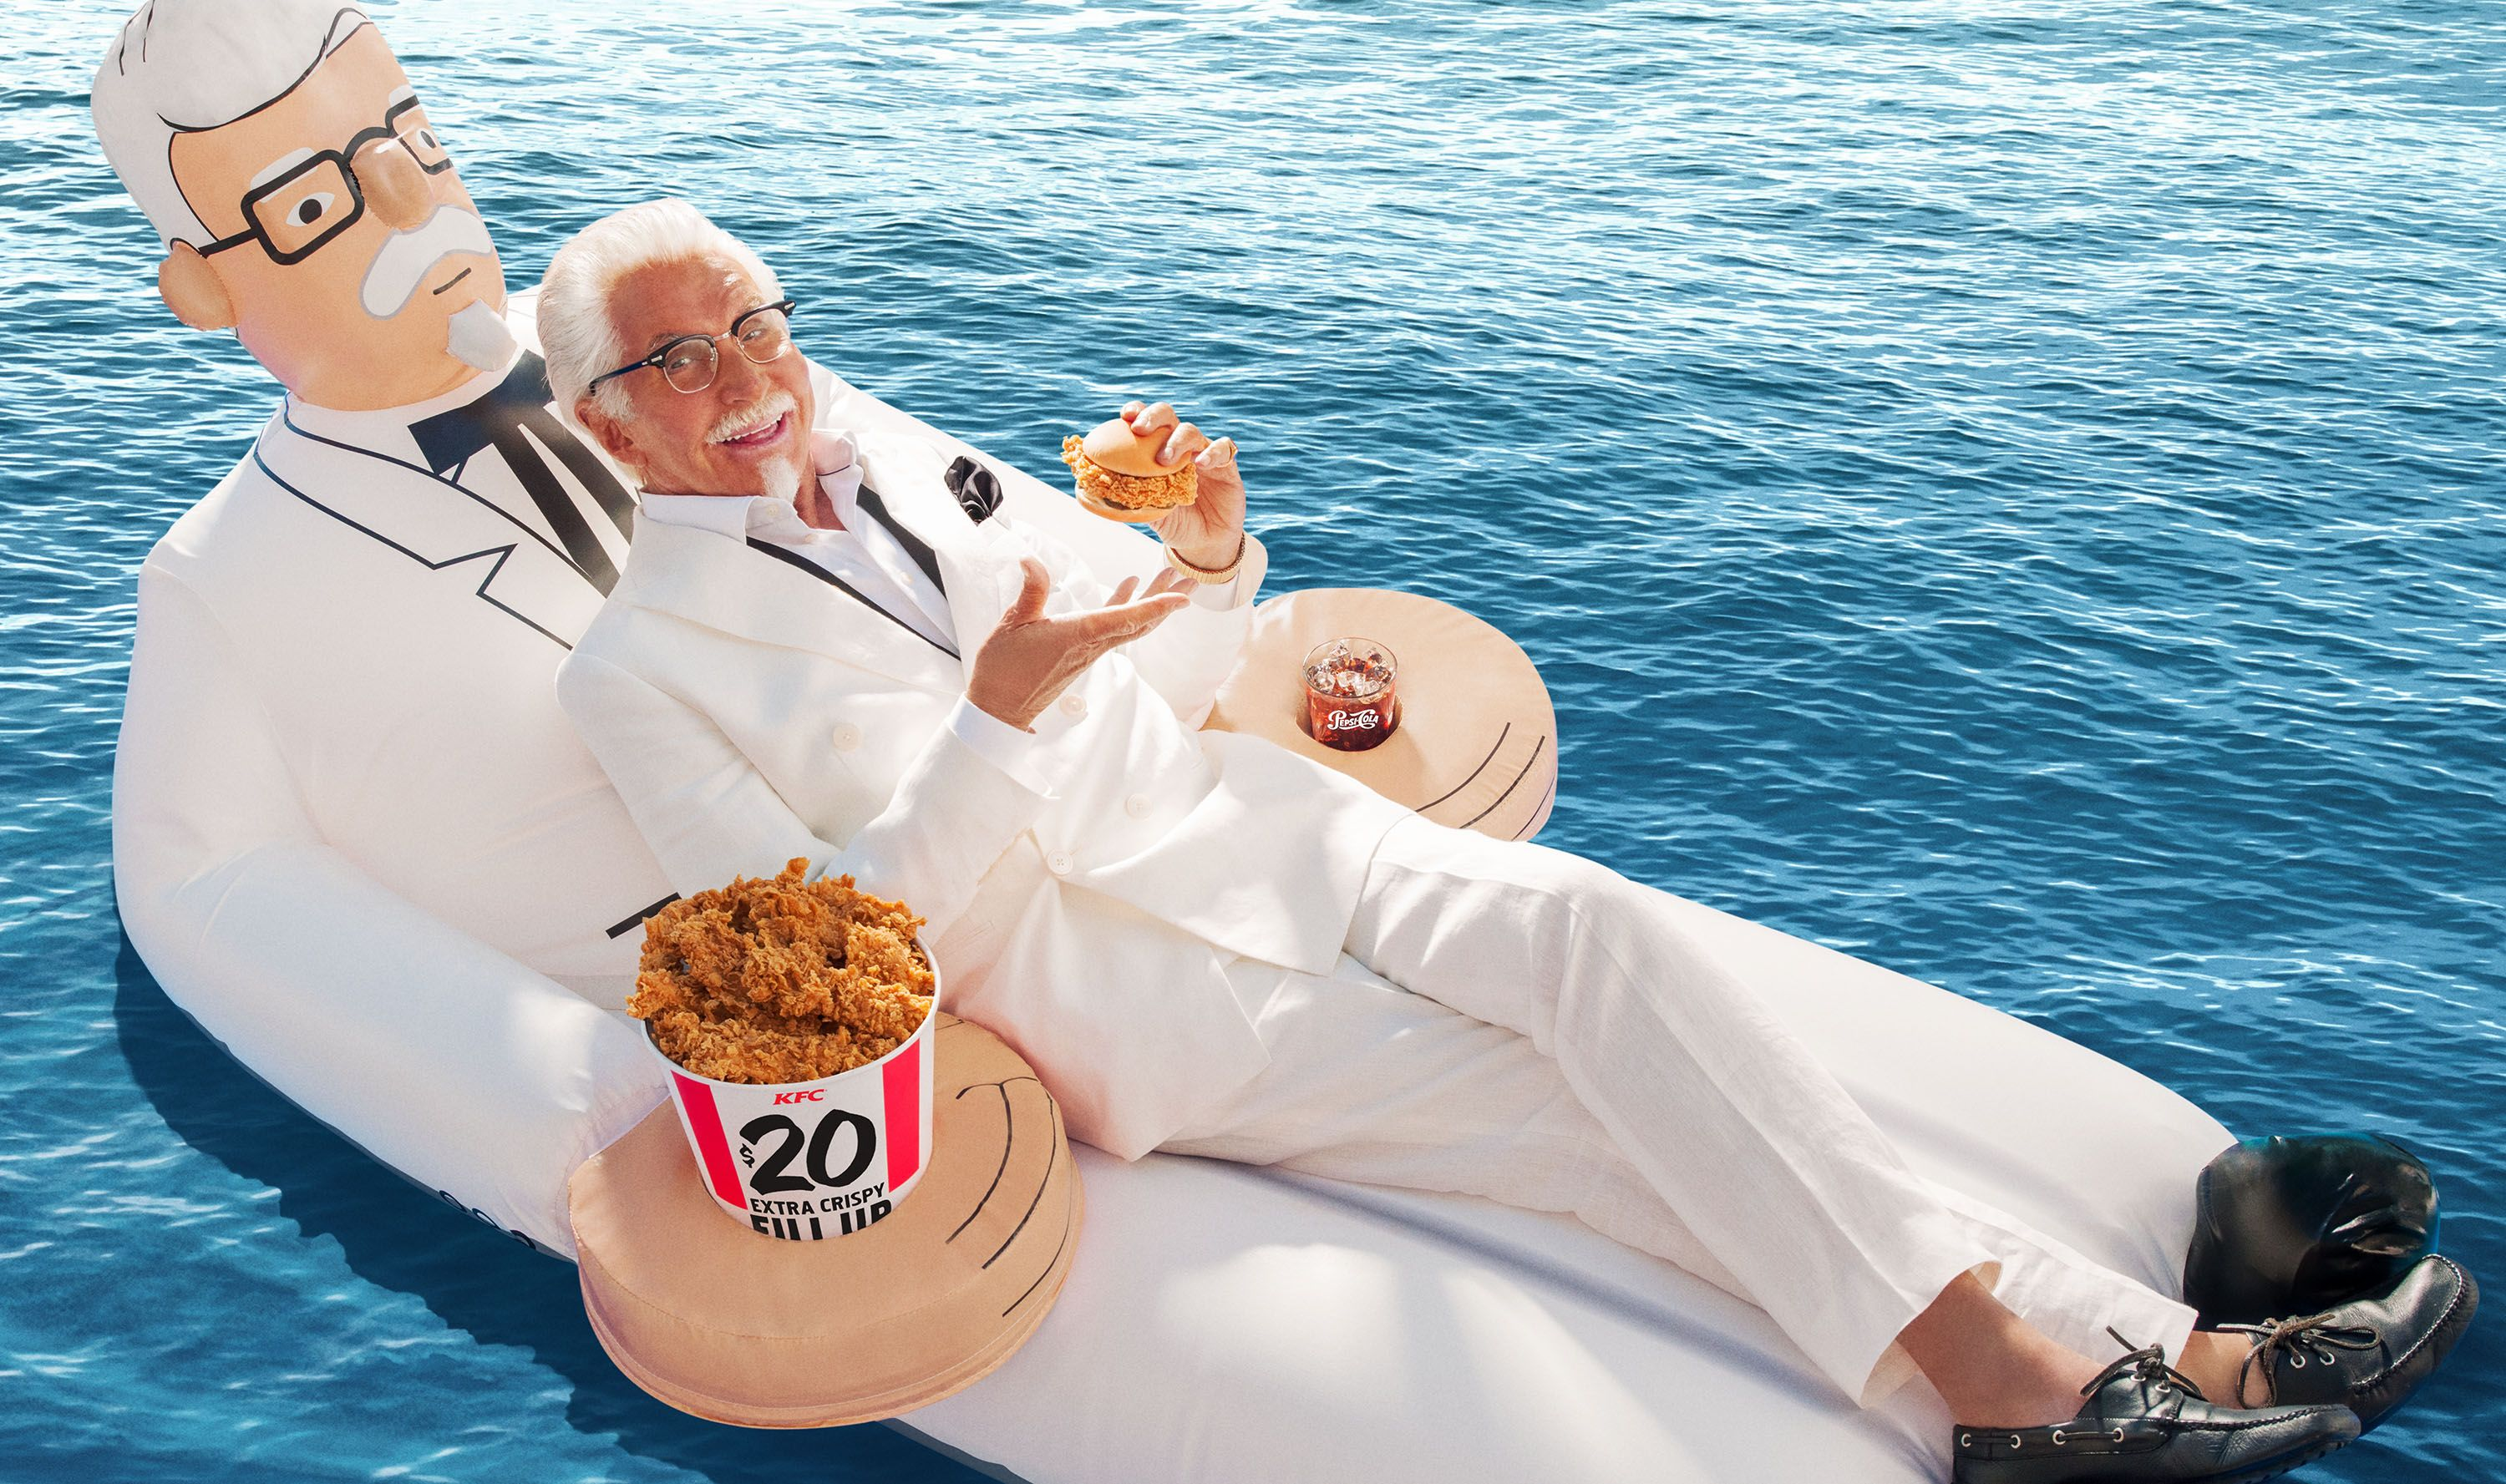 KFC Is Giving Away The Craziest Colonel Sanders Pool Floats